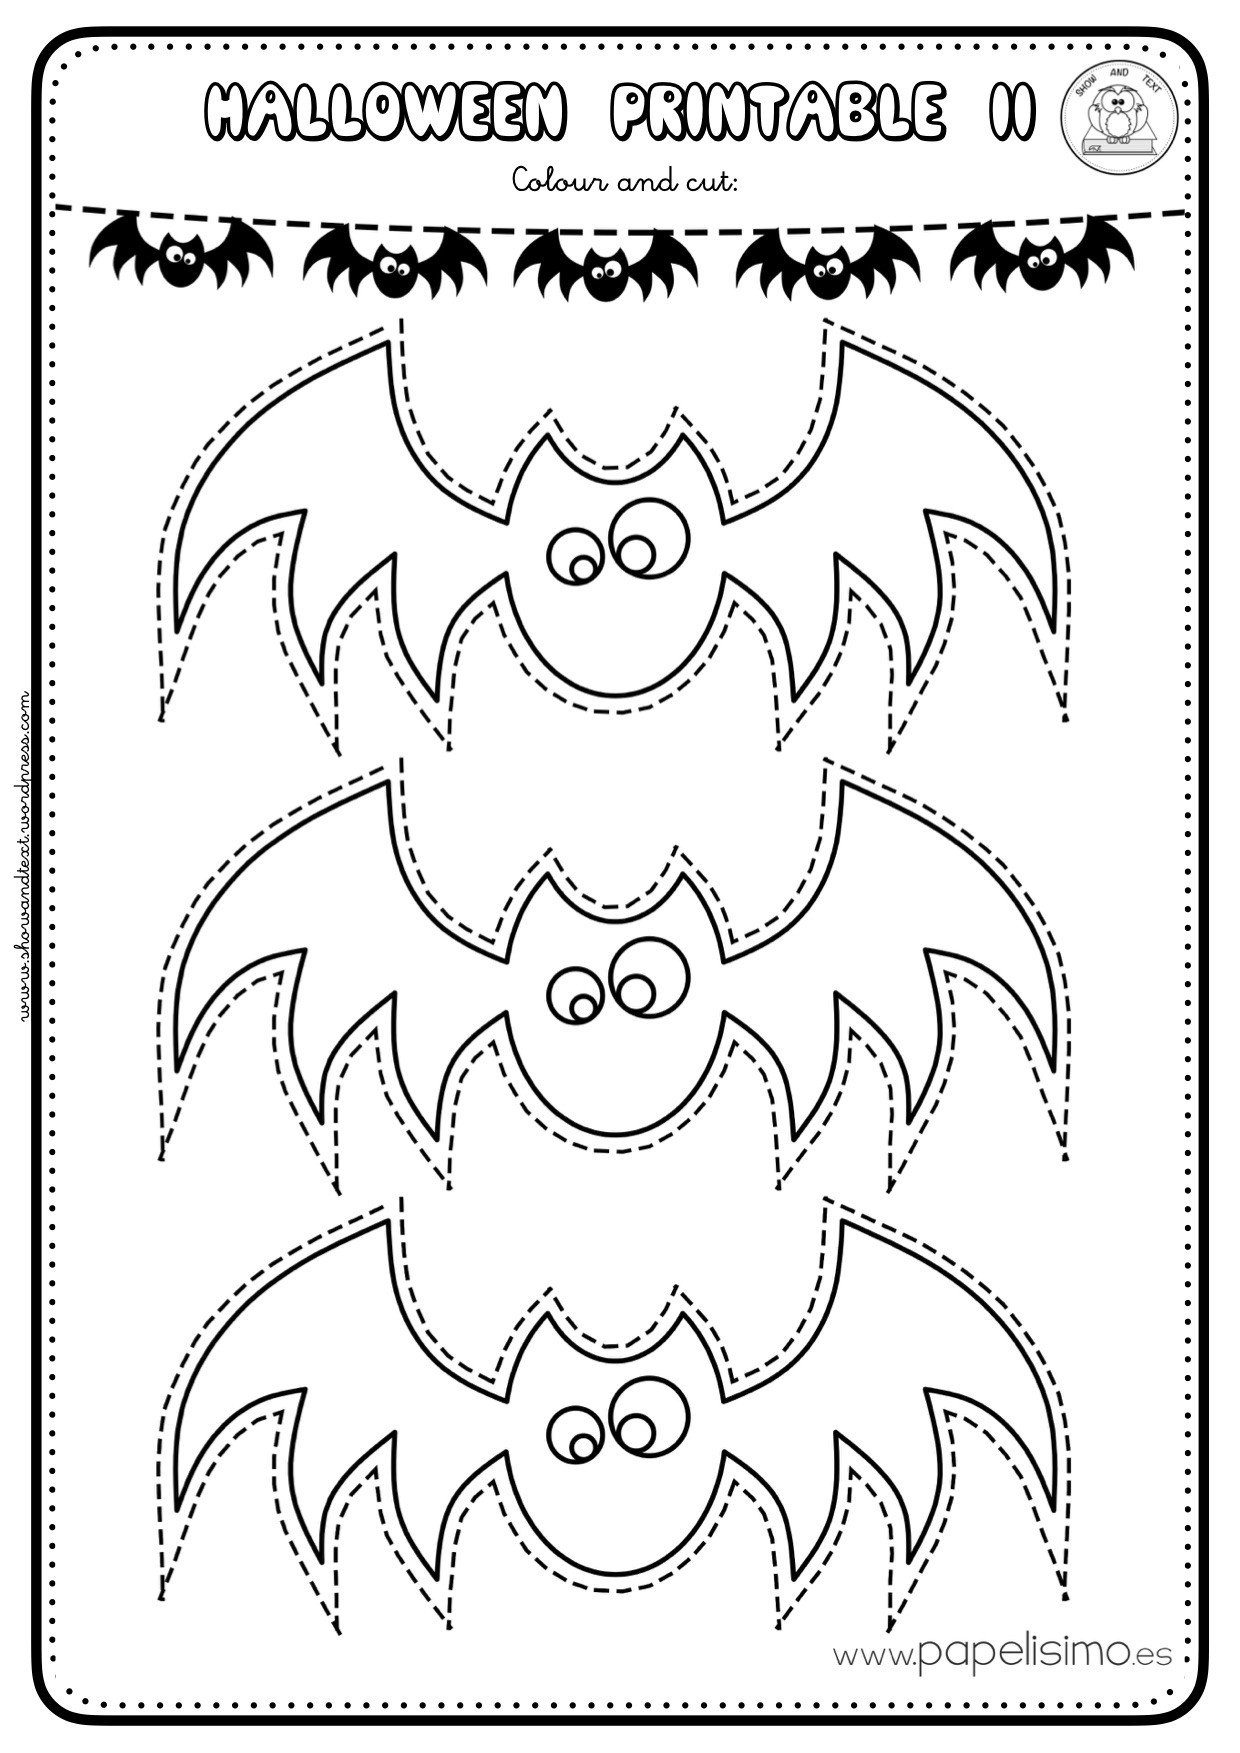 Pronoun Worksheets for Kindergarten Halloween Show and Text Pronoun Worksheets Blog System Math